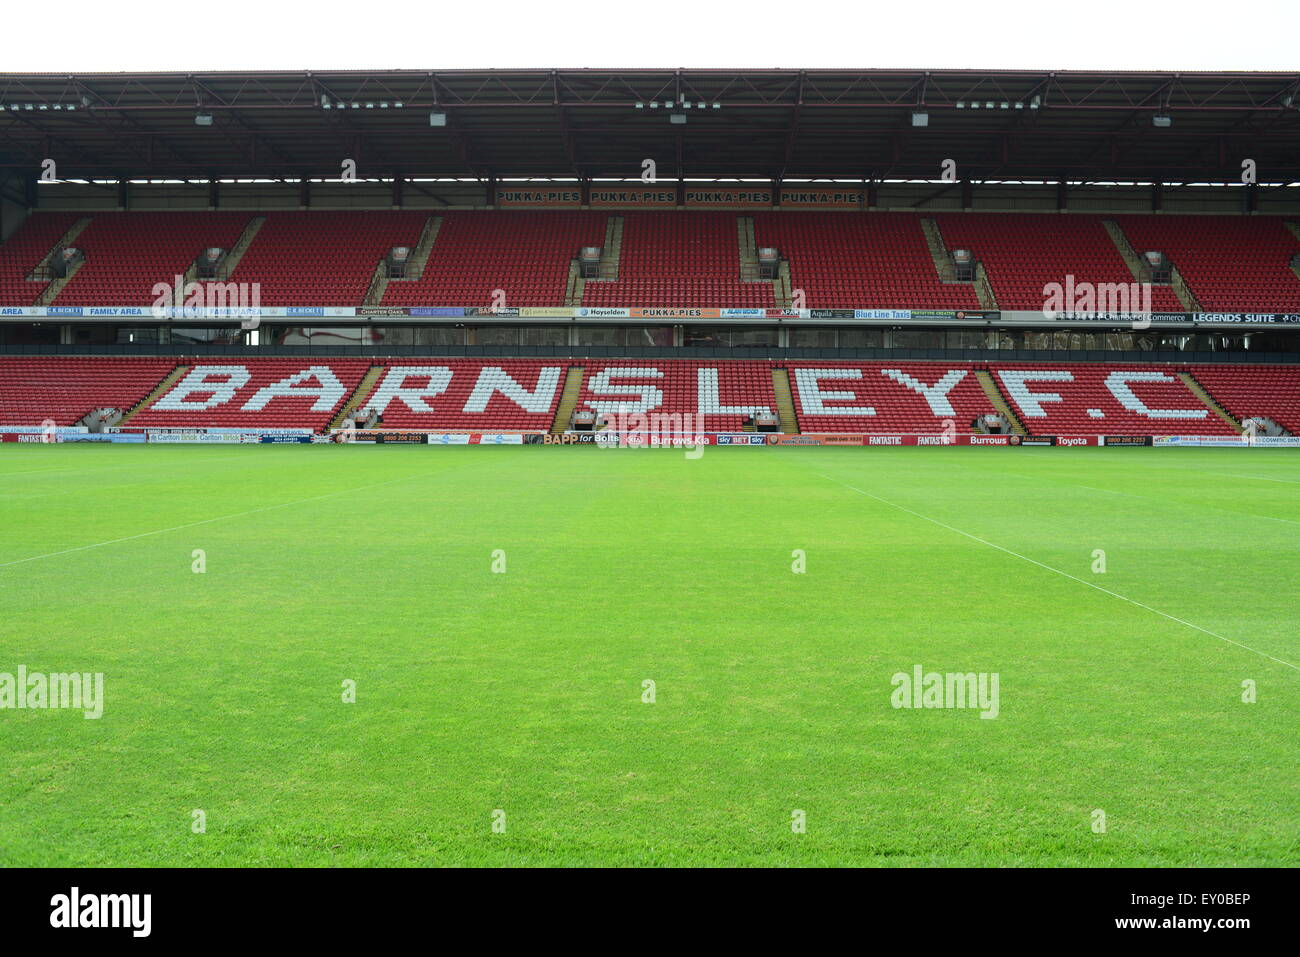 East Stand, Barnsley FC, Oakwell, Barnsley. Picture: Scott Bairstow/Alamy - Stock Image